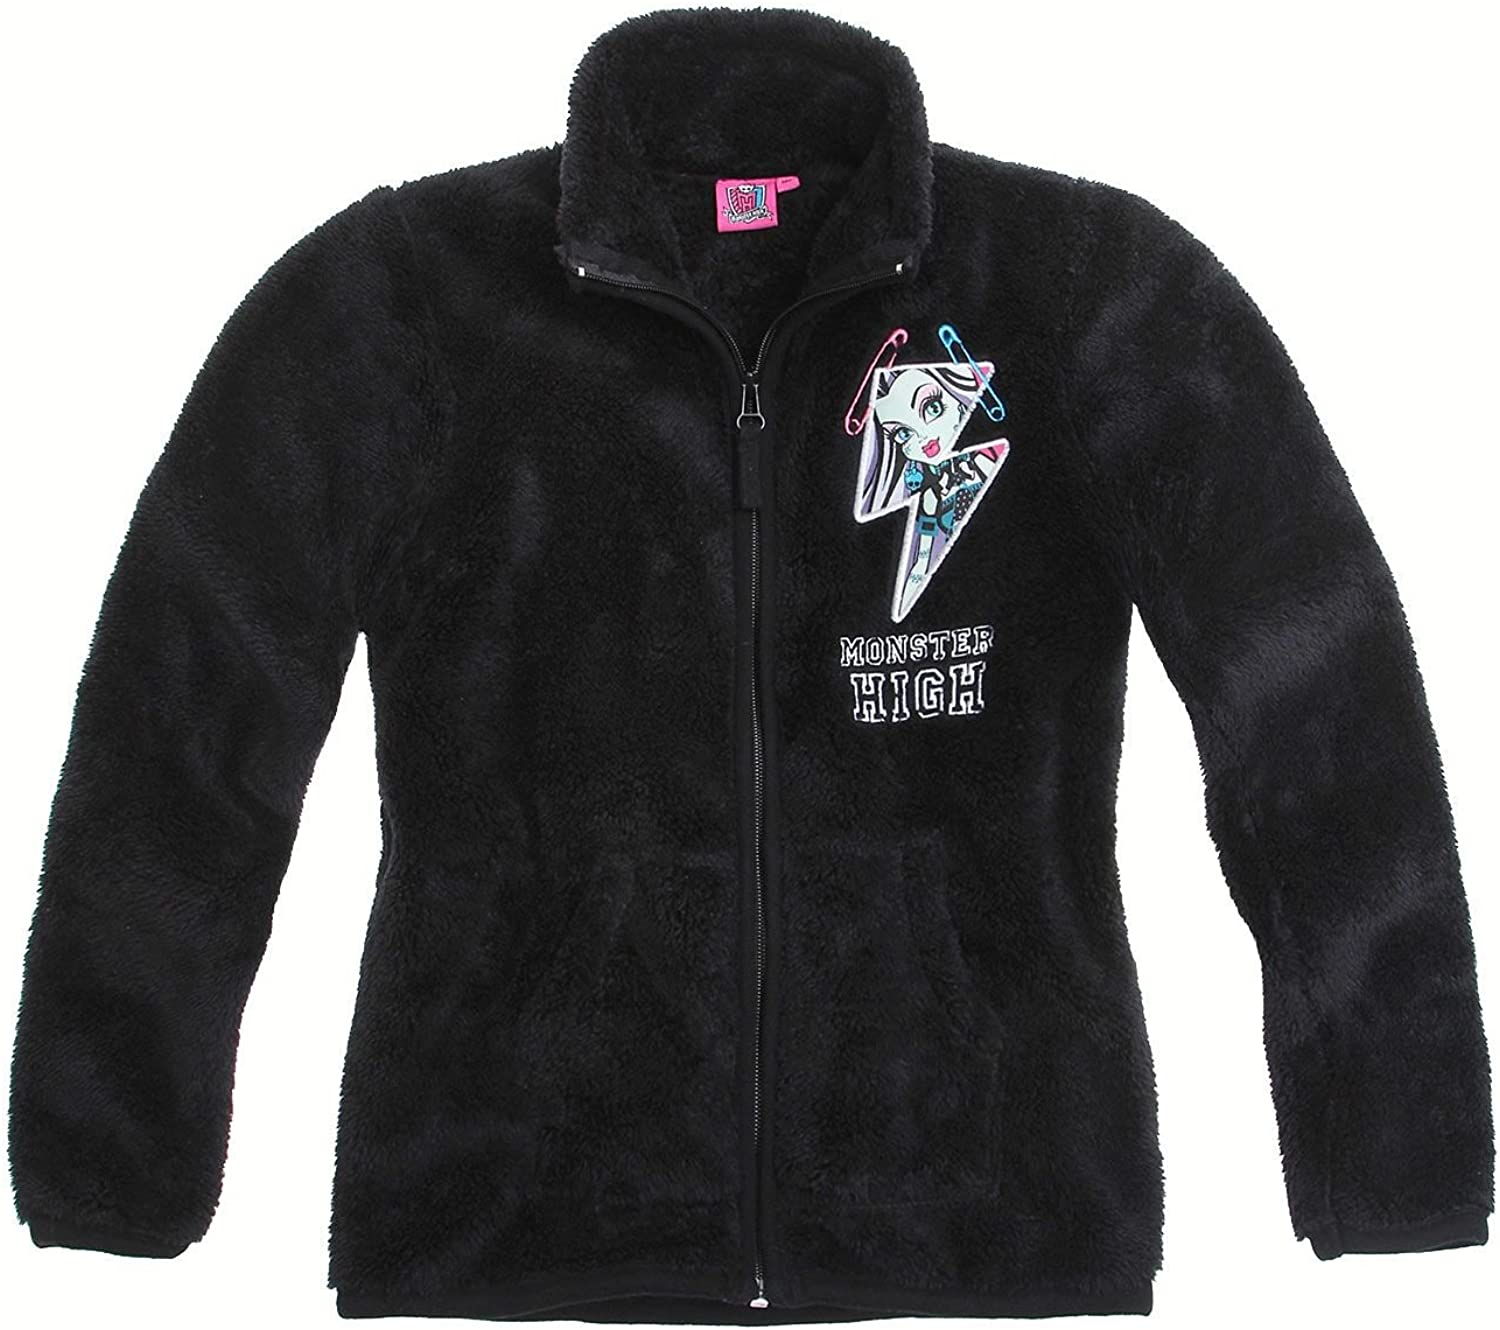 Monster High Polar Fleece Jacke schwarz